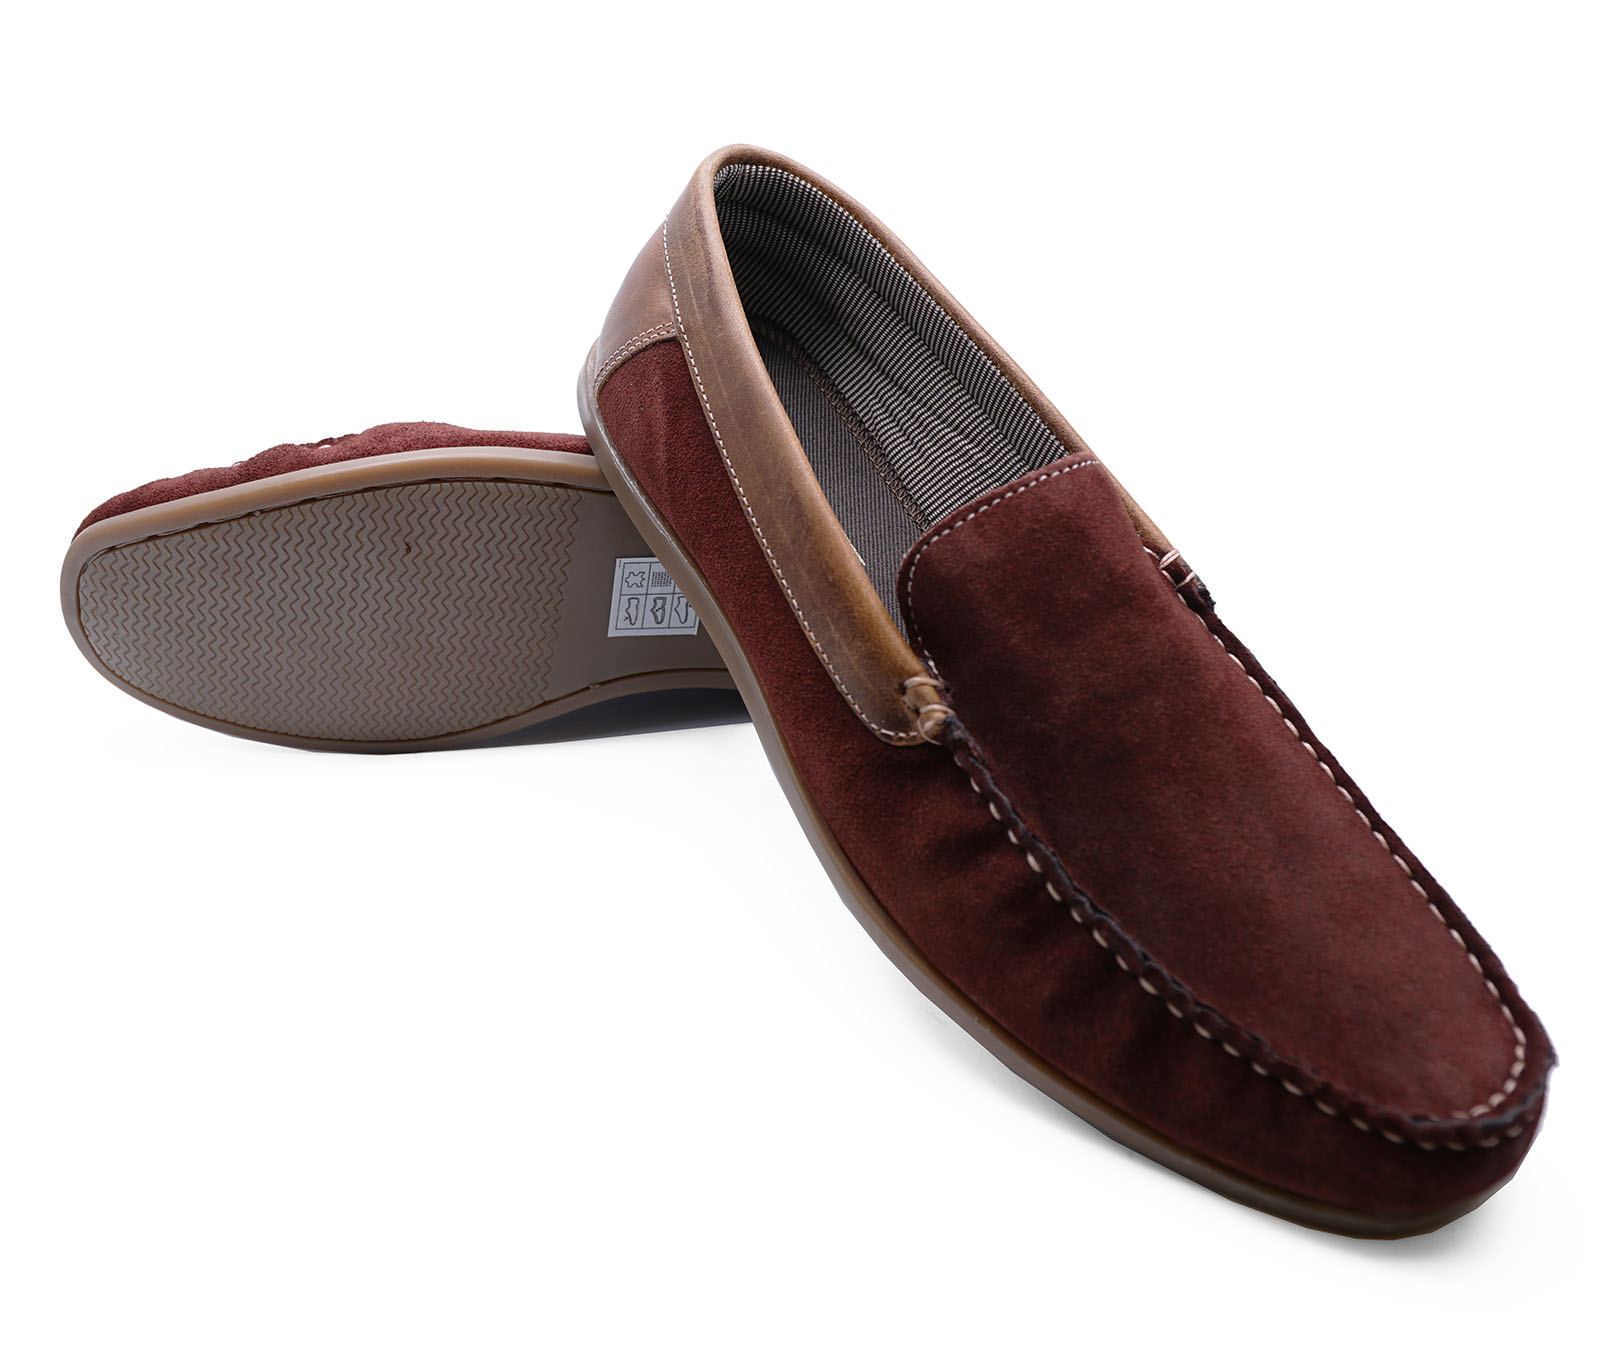 thumbnail 8 - MENS-LEATHER-TAN-BURGUNDY-SLIP-ON-LOAFERS-DRIVING-BOAT-DECK-MOCCASIN-SHOES-6-12